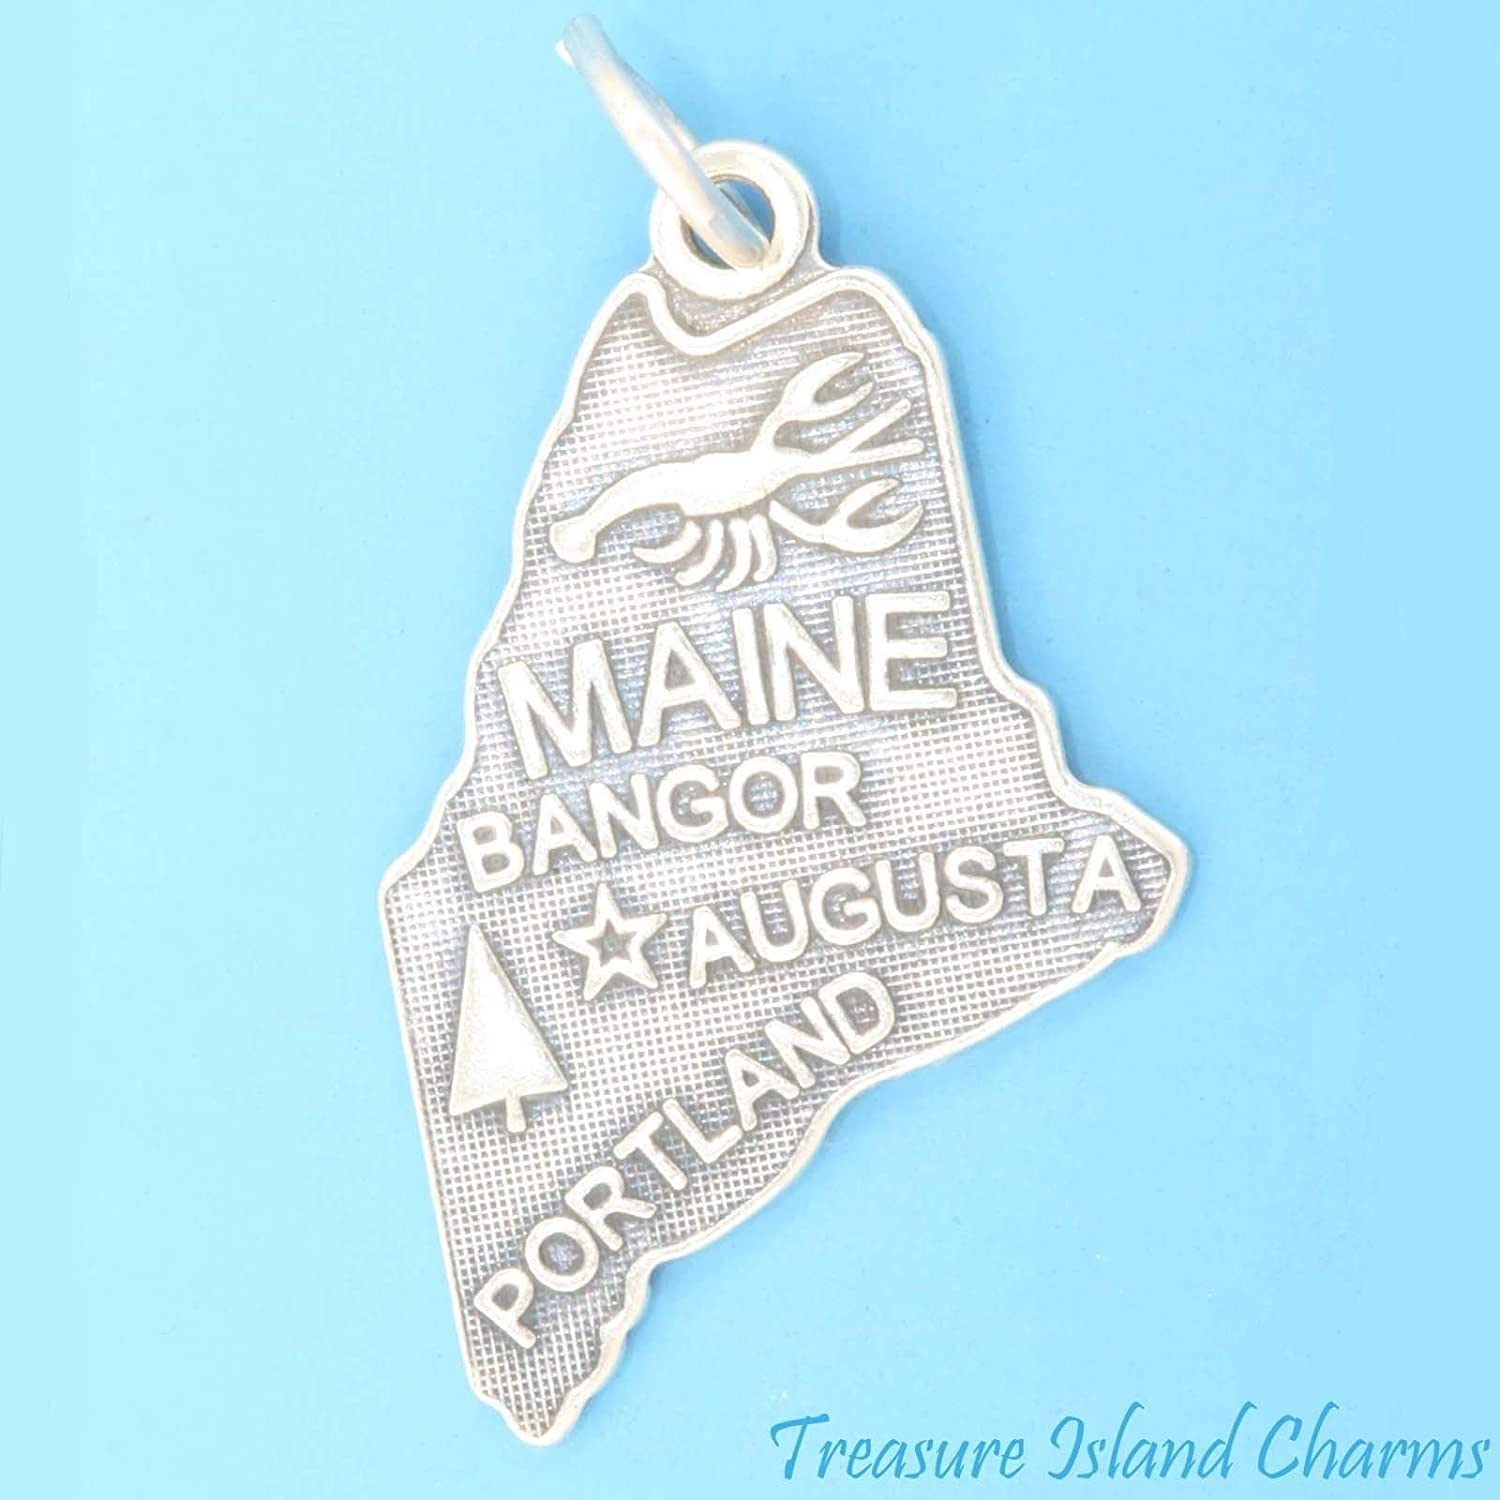 Maine State MAP Portland Augusta Bangor .925 Solid Sterling Silver Charm Pendant Ideal Gifts, Pendant, Charms, DIY Crafting, Gift Set from Heart by Wholesale Charms